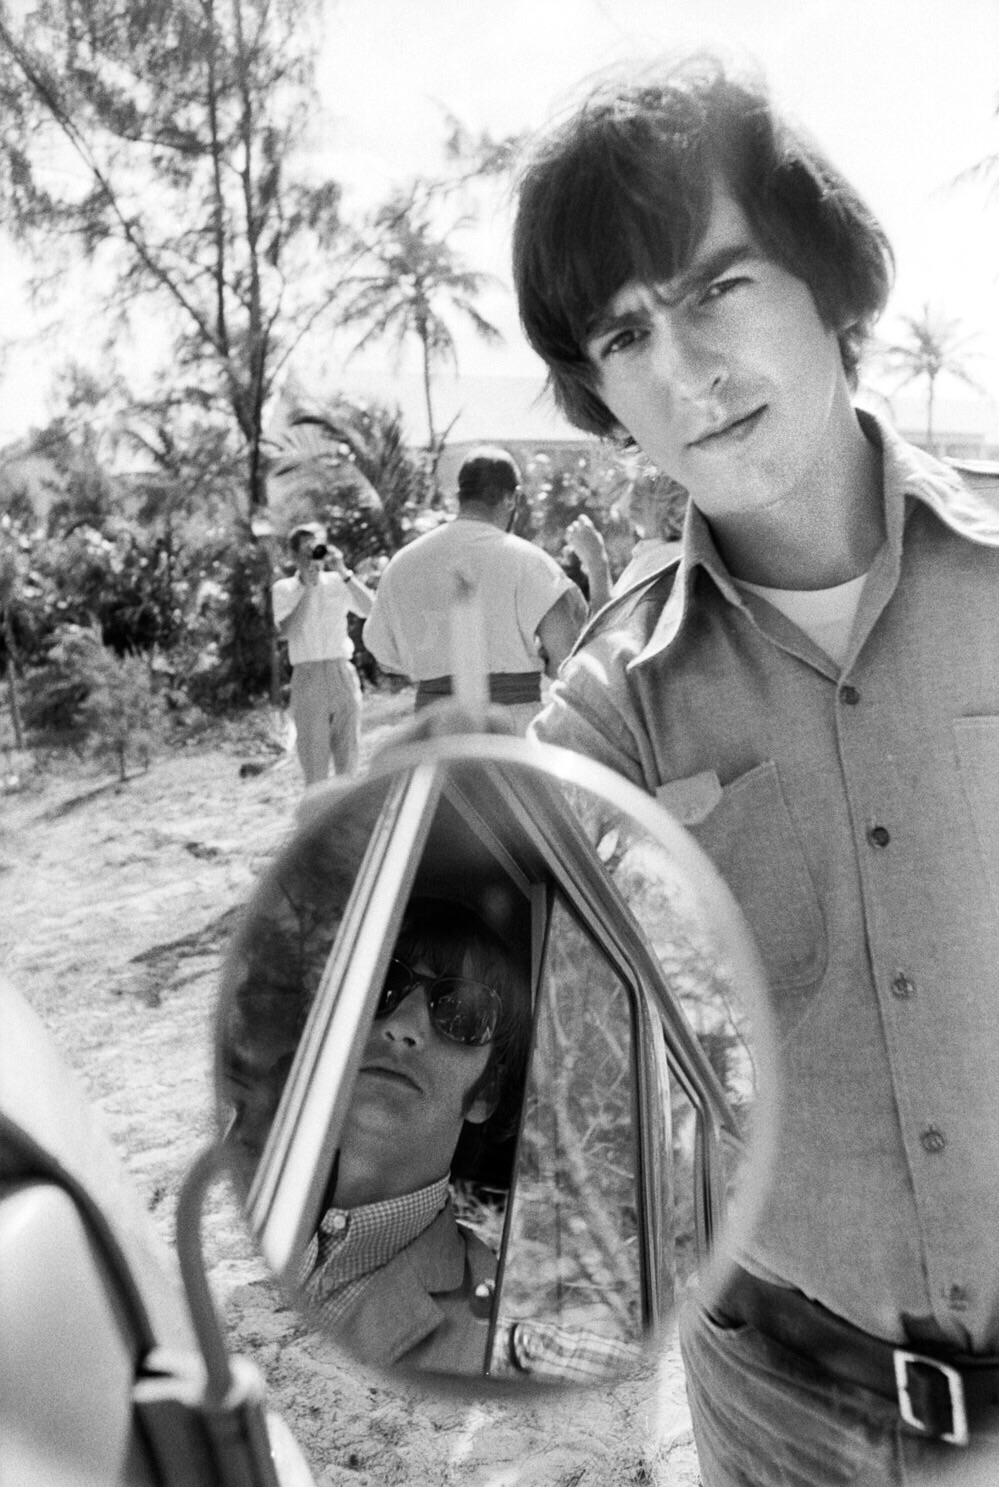 George Harrison and Ringo Starr filming Help! in the Bahamas, 1965.